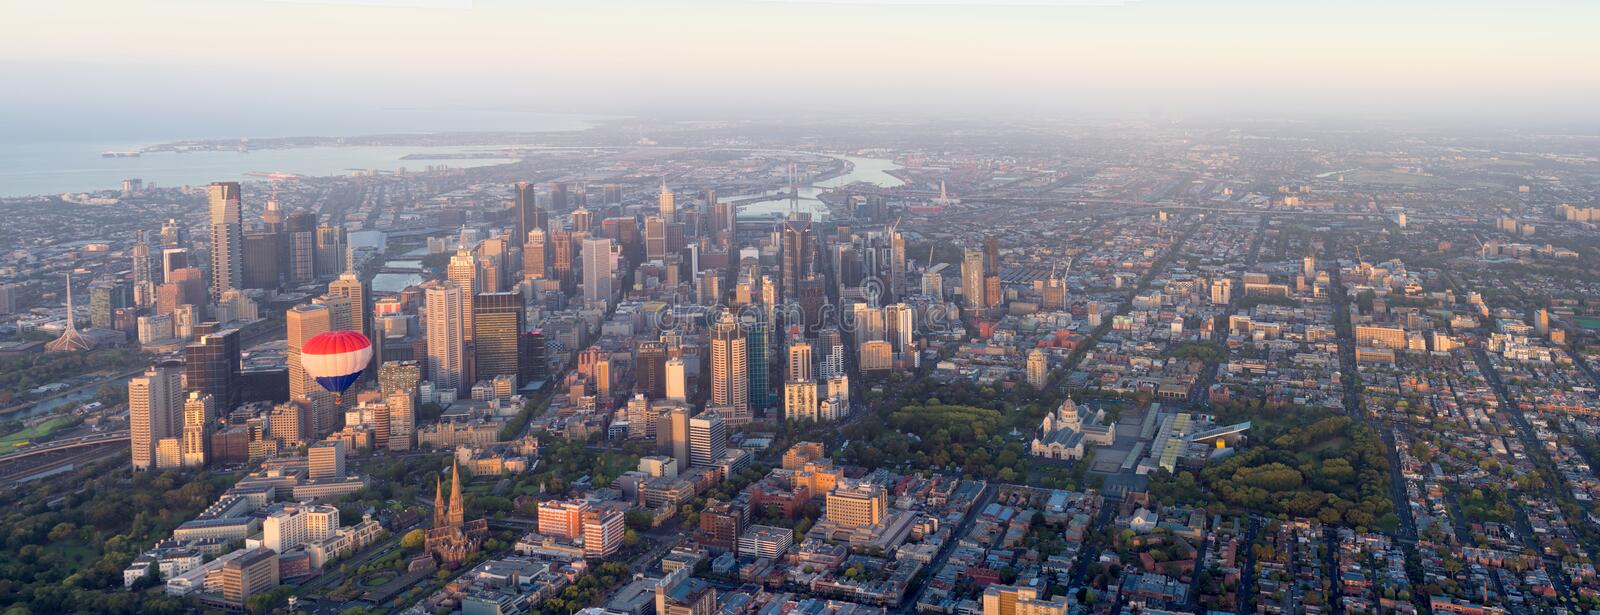 Melbourne overiew. Melbourne panorama from the air stock image